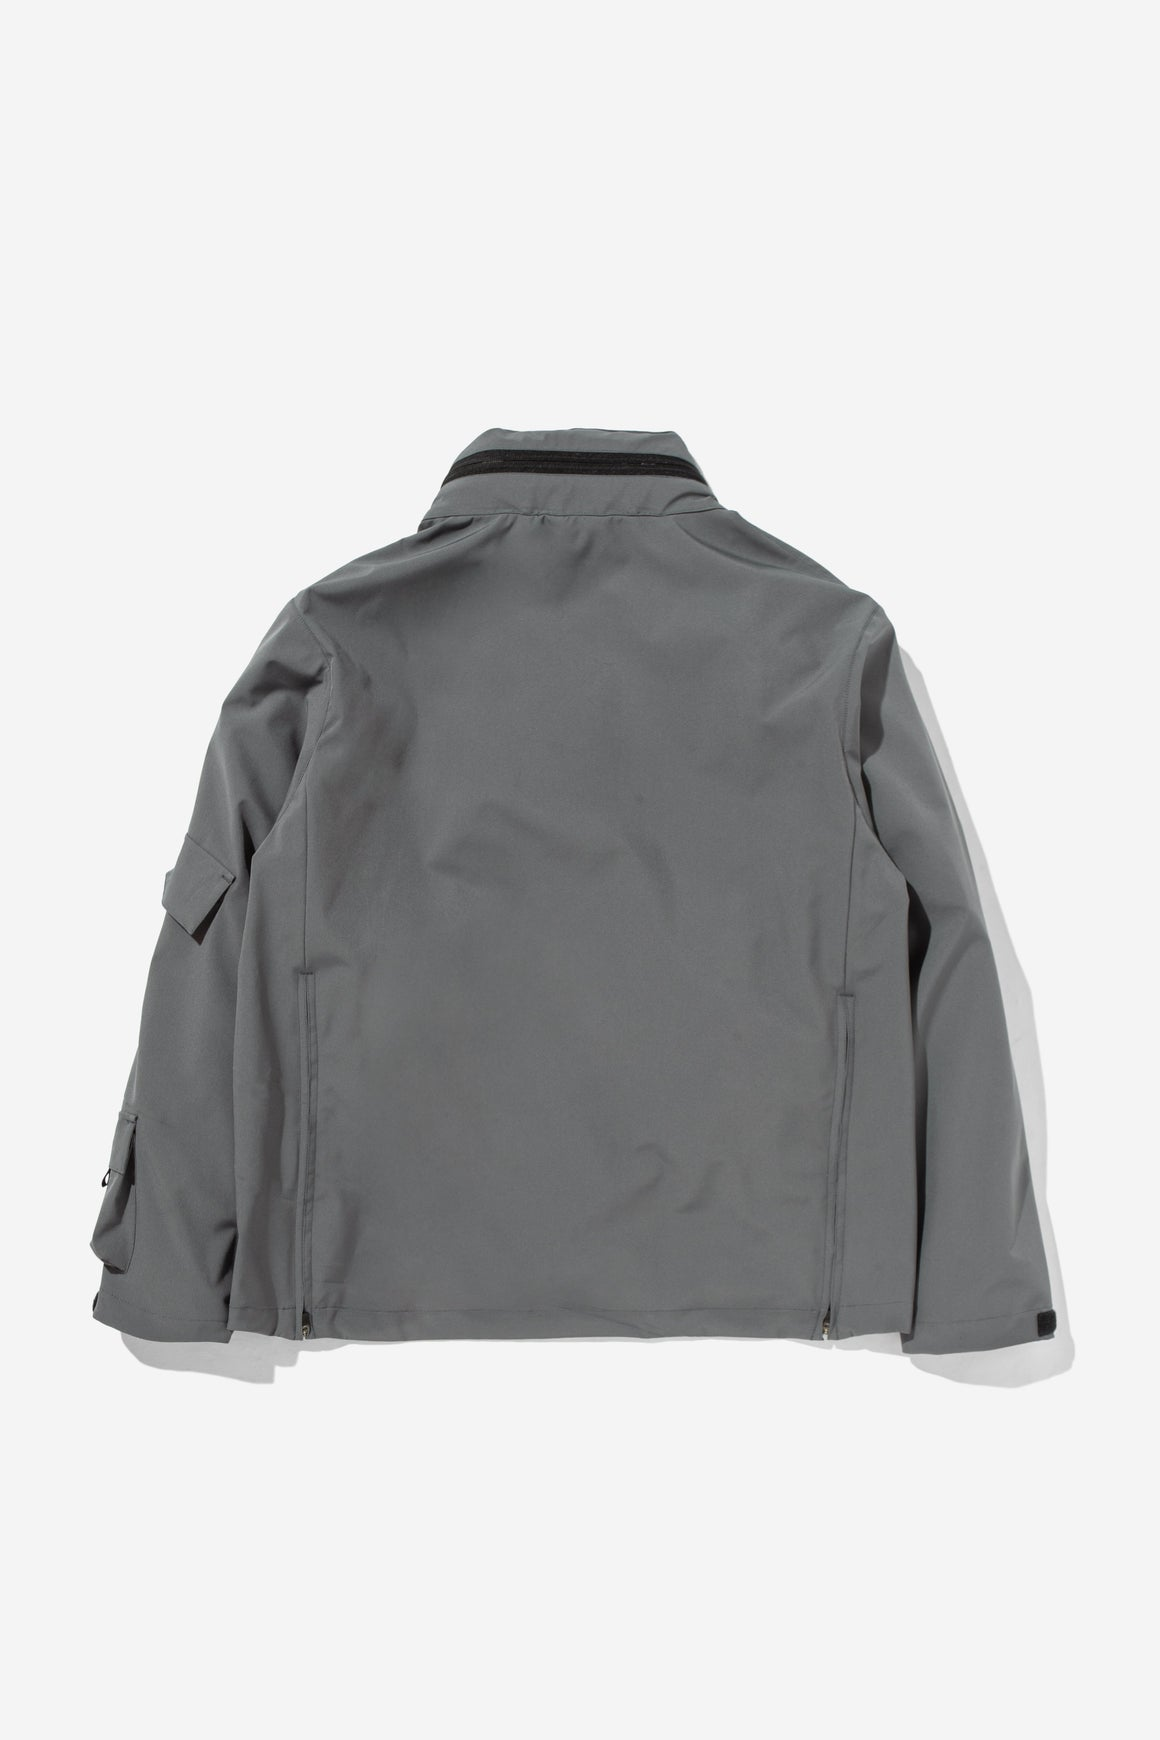 ARES SHELL JKT Grey